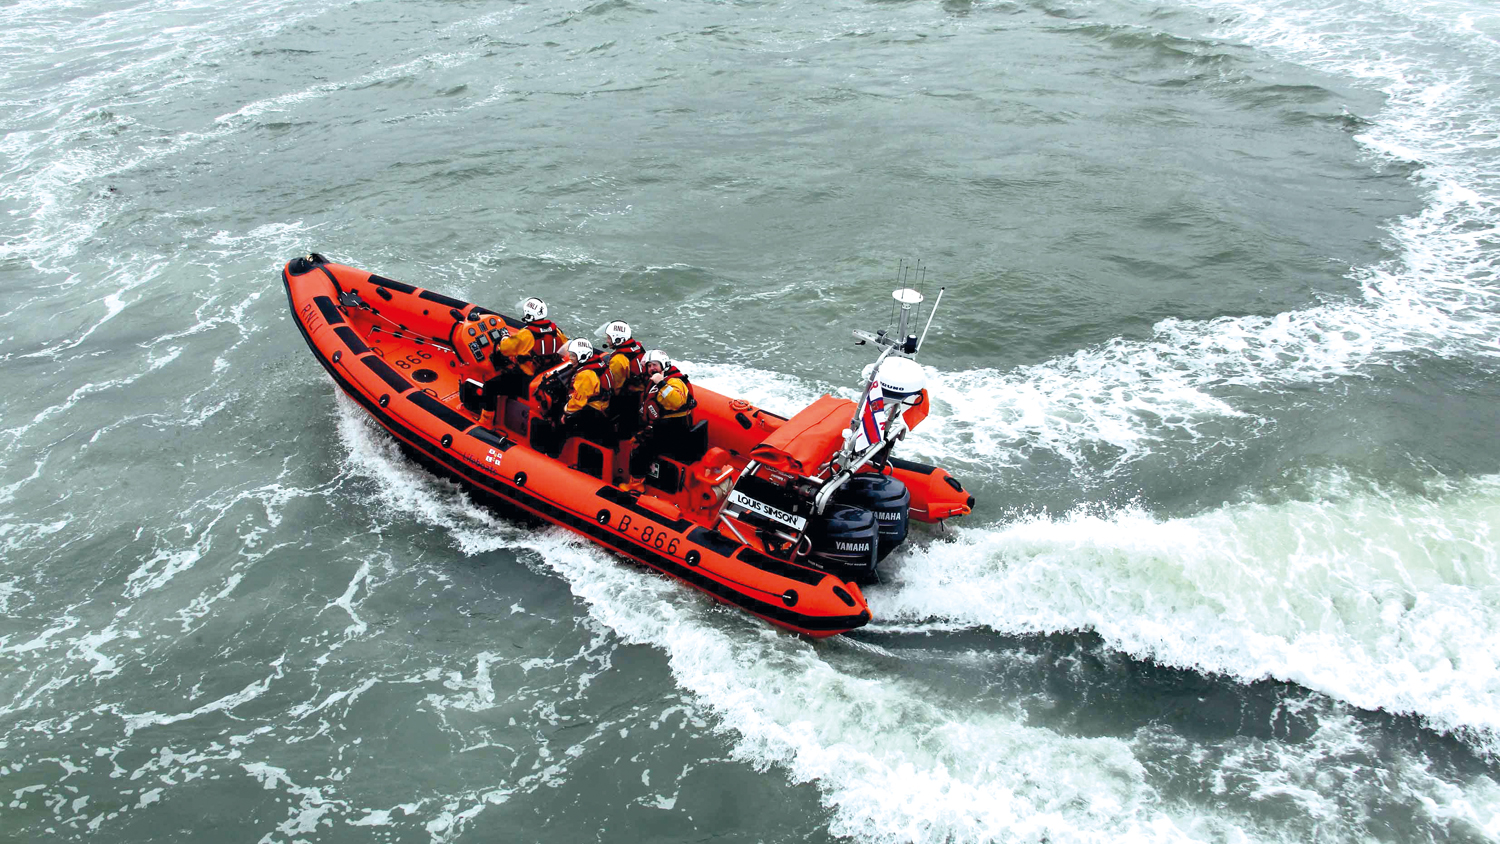 Skerries Atlantic 85 inshore lifeboat Louis Simson at sea.